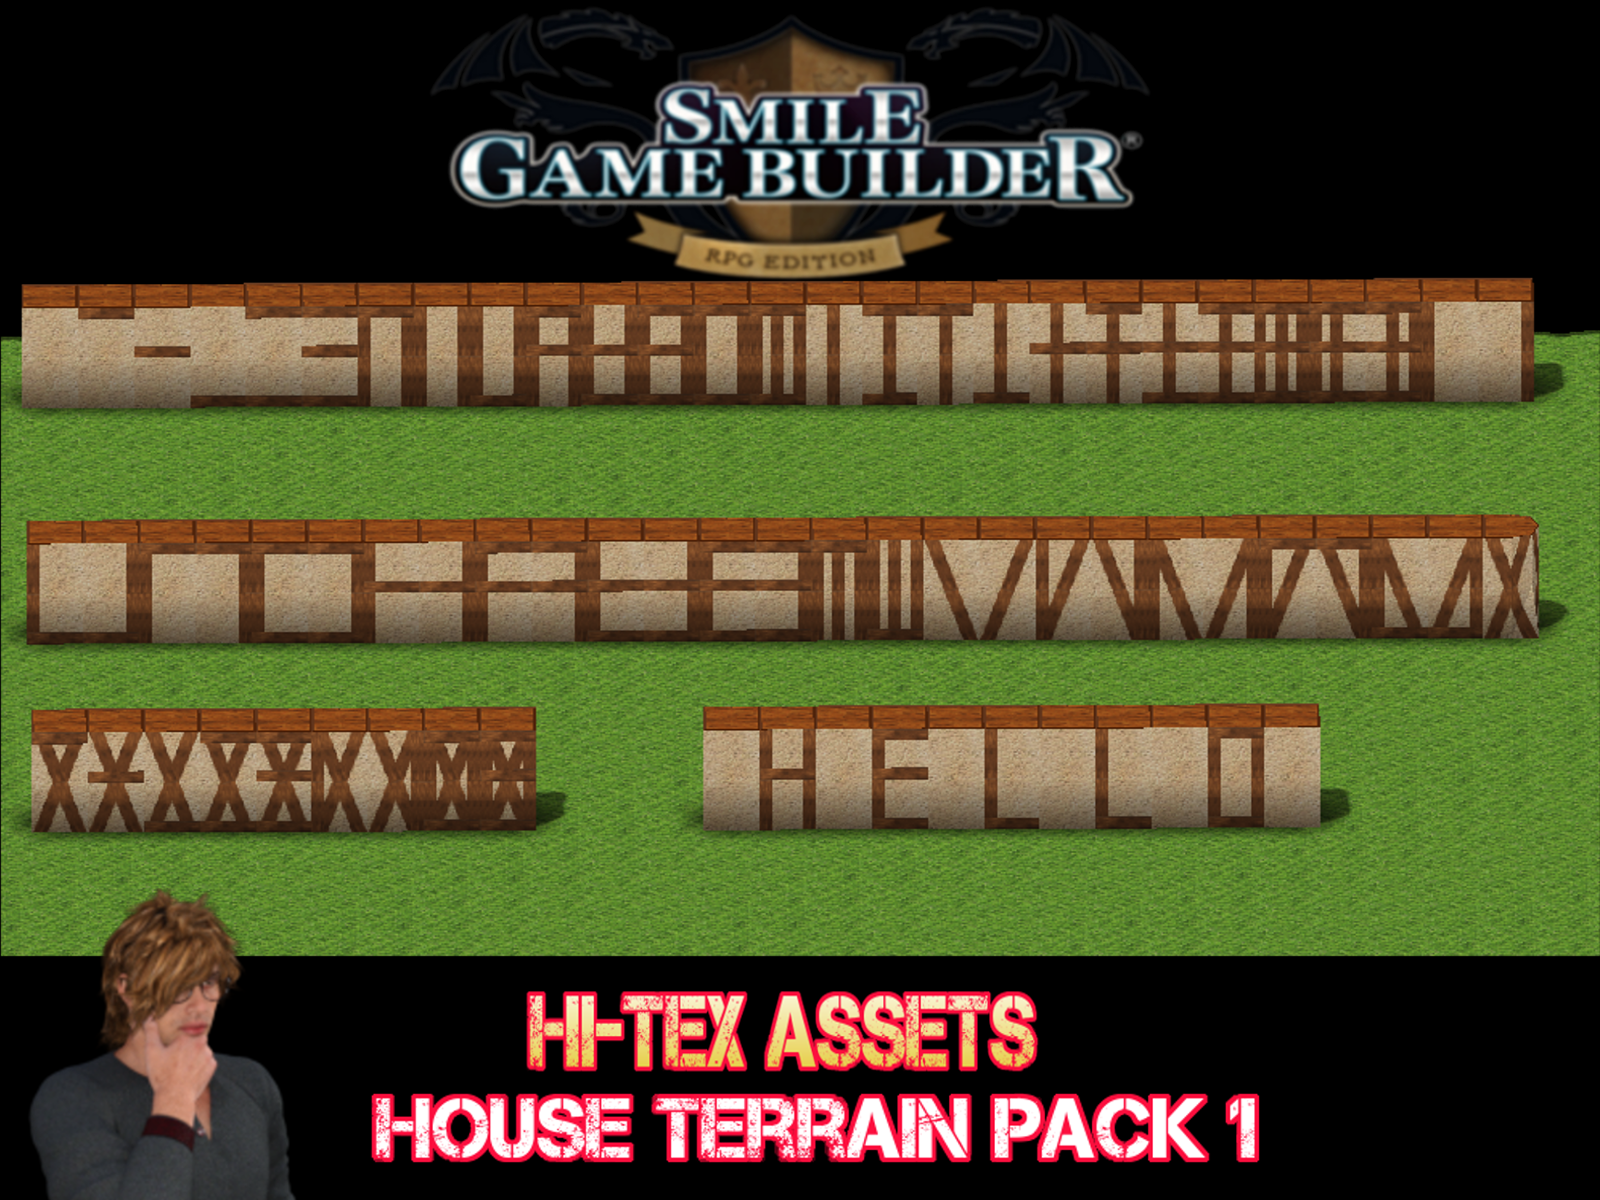 Smile Game Builder Hi-Tex House Terrain Pack 1 - Promo 1